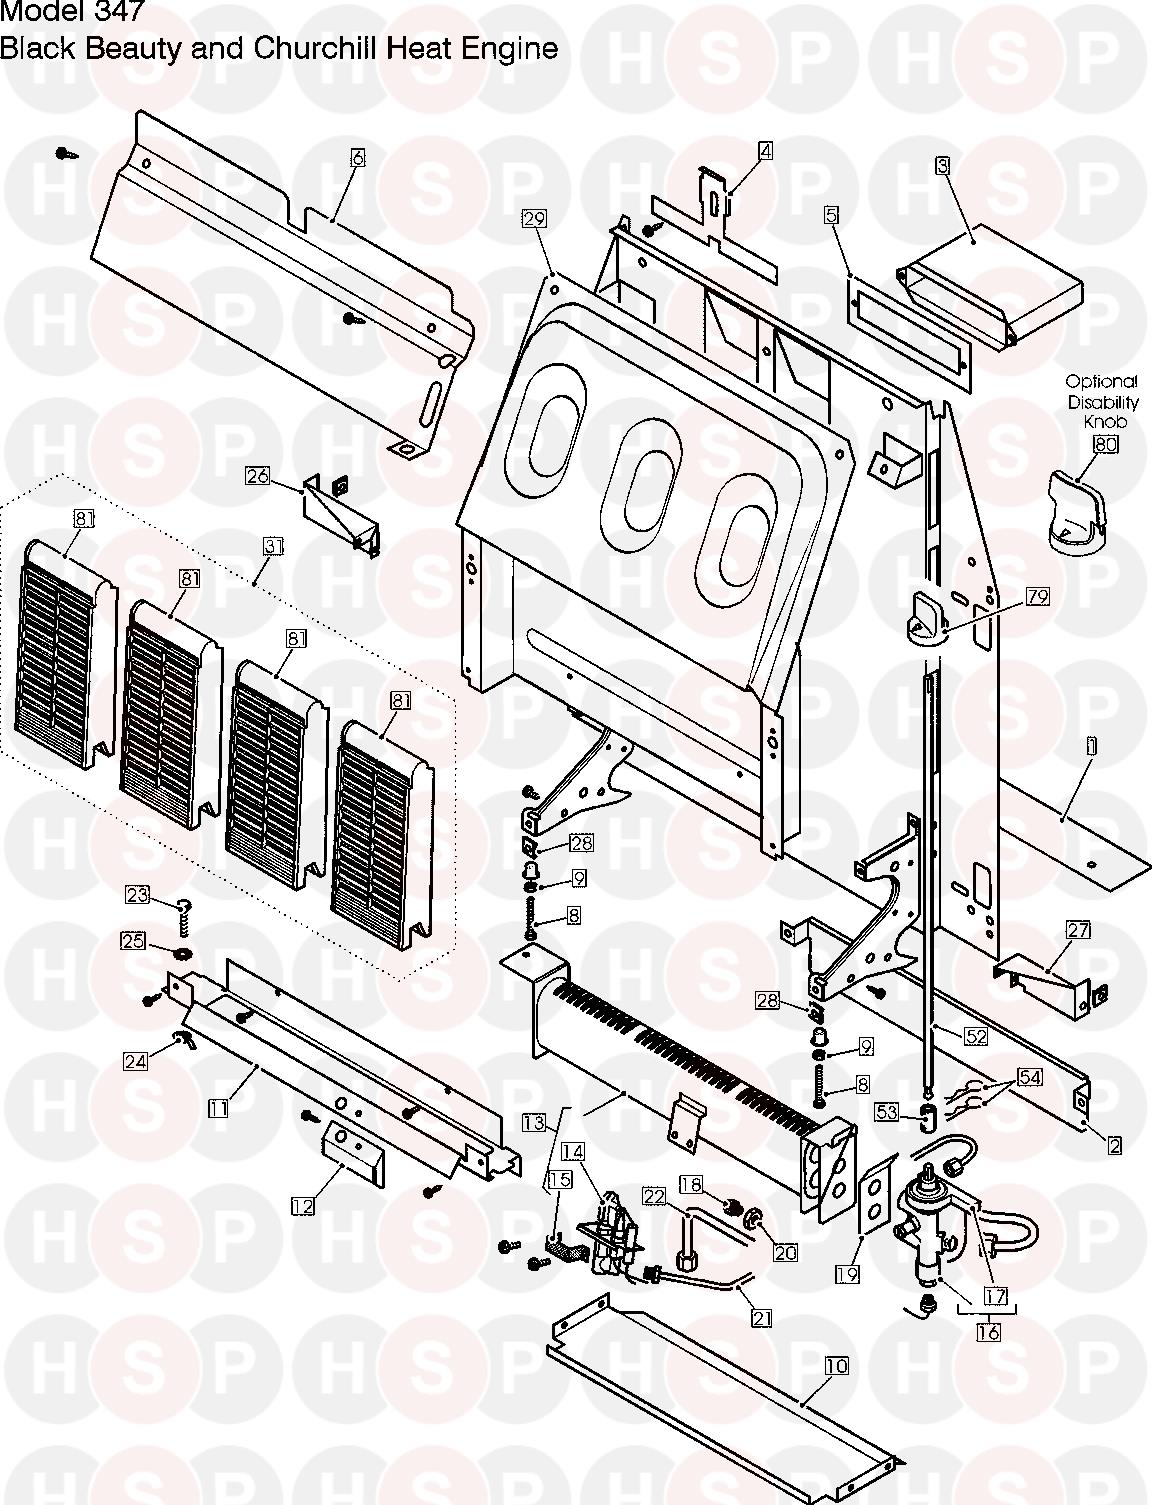 ENGINE diagram for Valor Gas Fire Model 347 BLACK BEAUTY Click the diagram  to open it on a new page